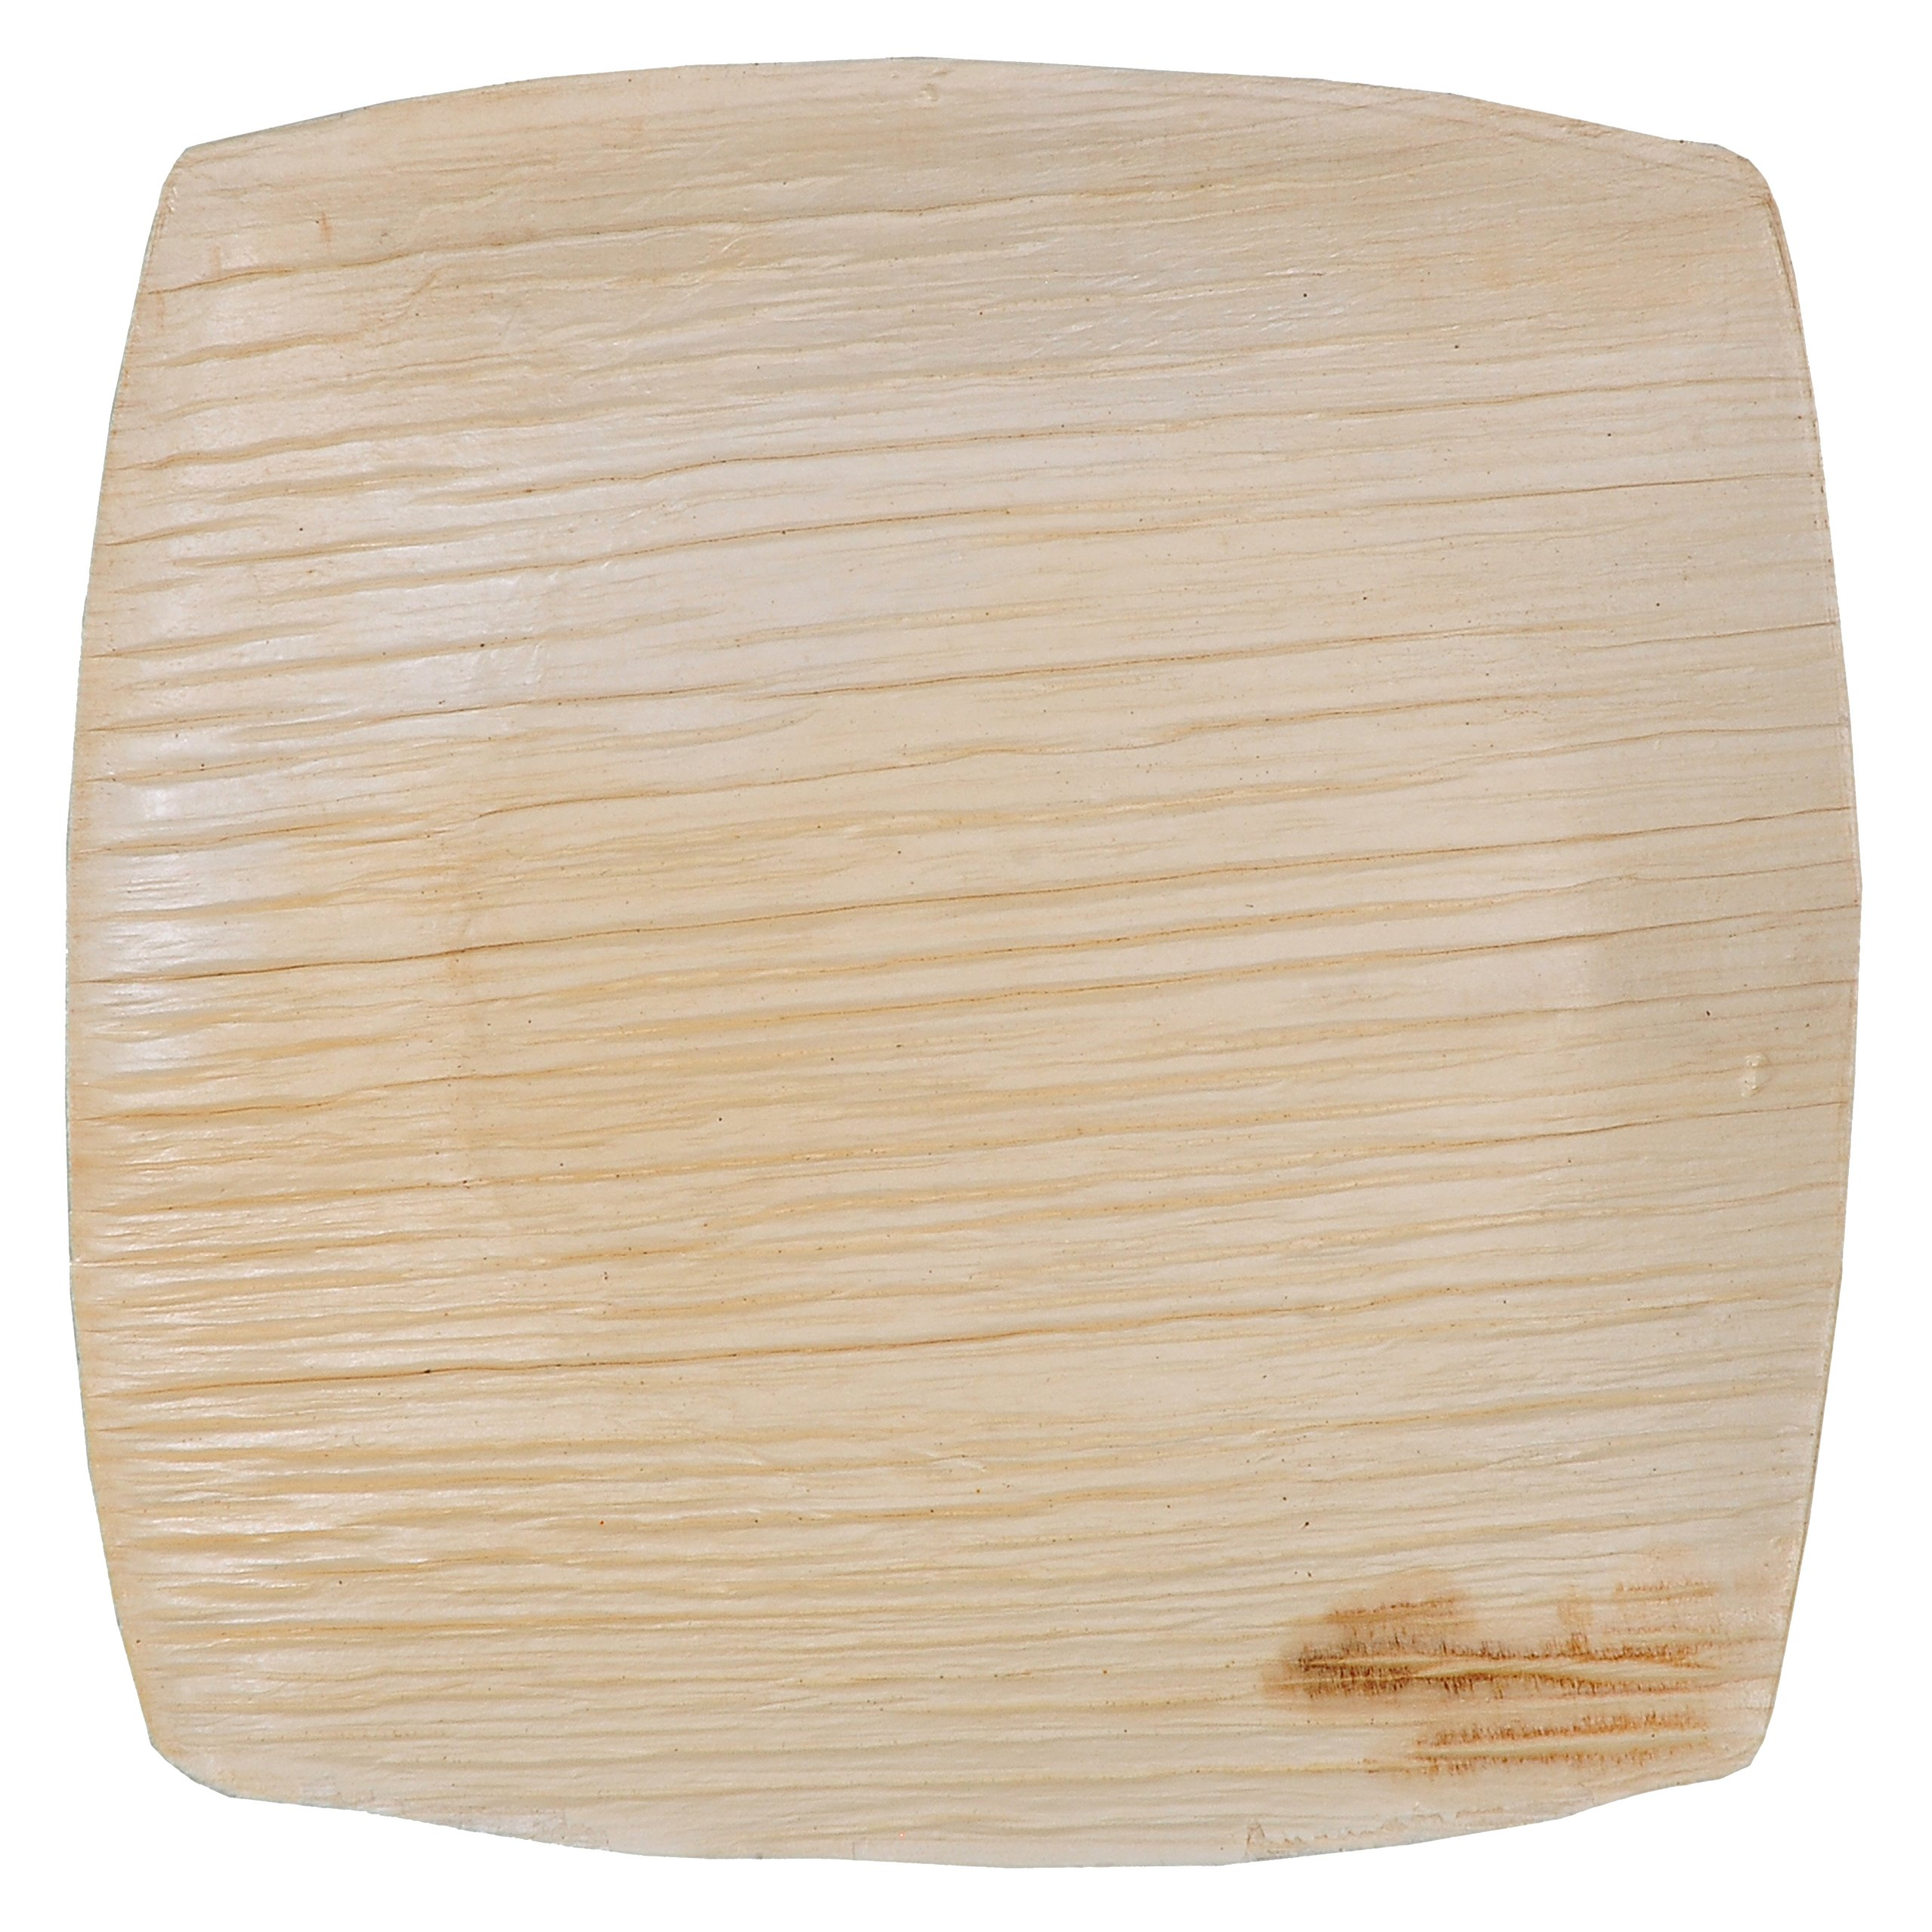 GREEN ATMOS 100 PACK - 4'' X 4'' QUADRATO SQUARE MINI TASTER / COOKIES PLATE BIODEGRADABLE, COMPOSTABLE AND ECO-FRIENDLY DISPOSABLE ARECA PALM LEAF PLATES